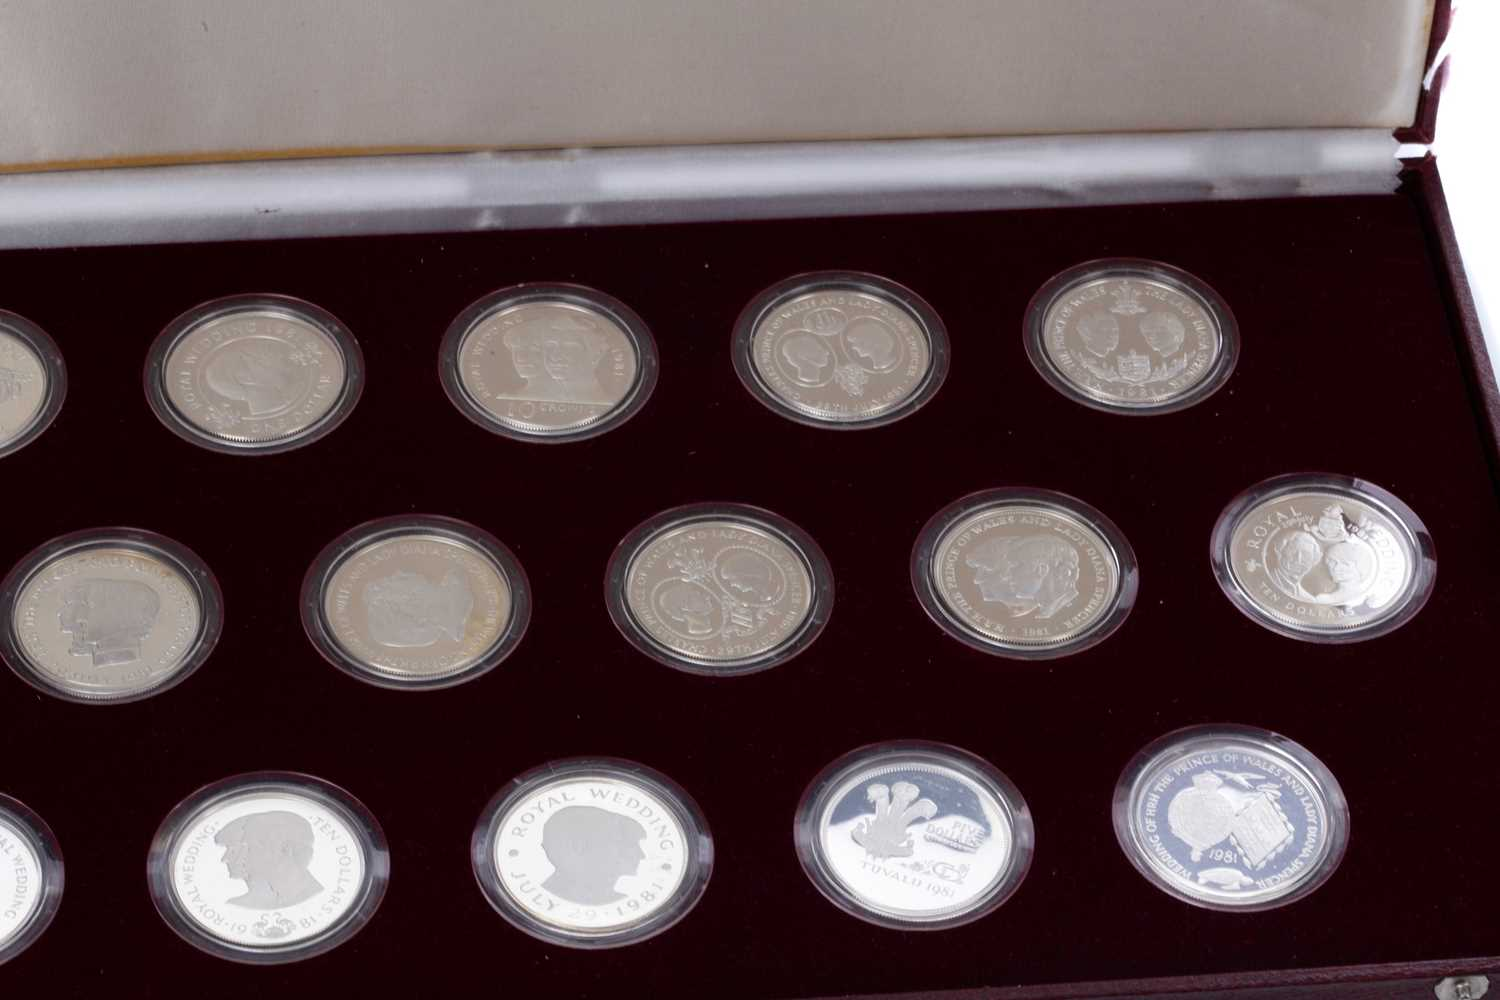 Lot 3 - THE 1981 ROYAL MARRIAGE COMMEMORATIVE STERLING SILVER COIN COLLECTION